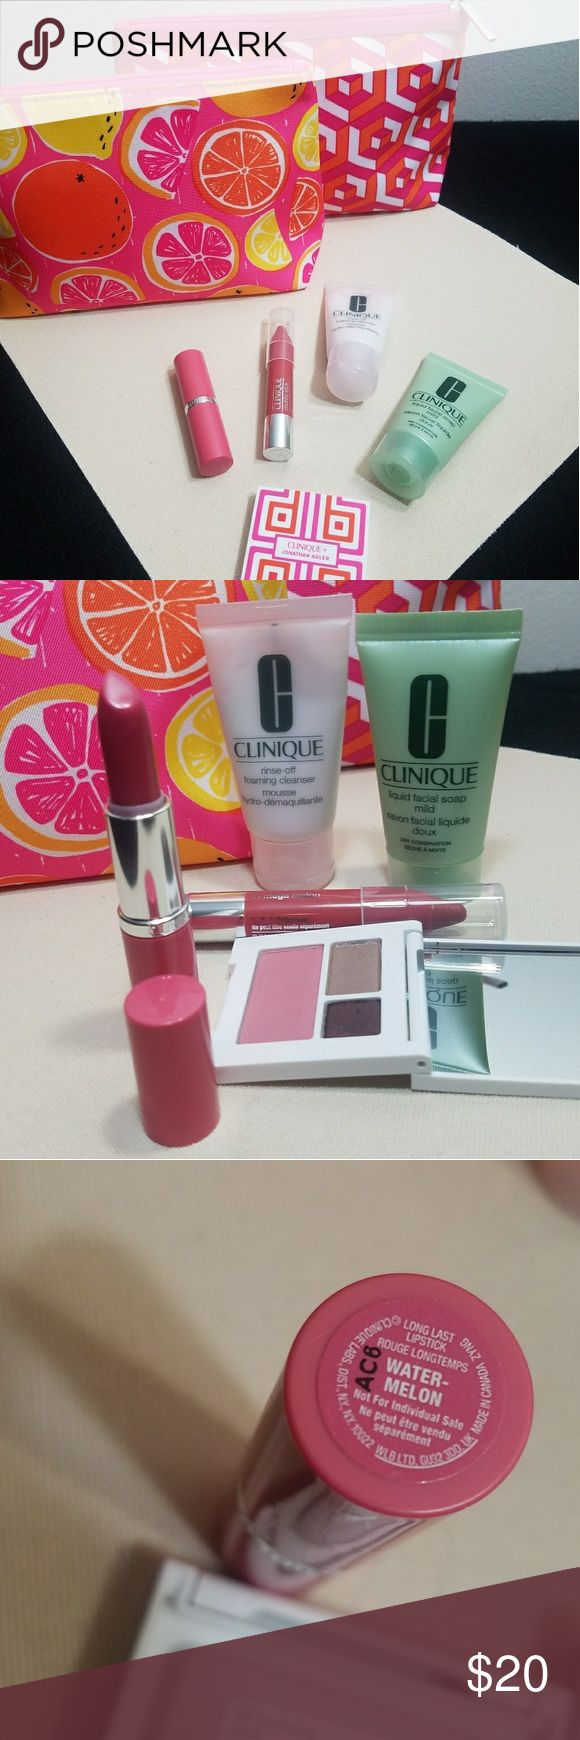 Clinique makeup sample bundle includes  1. pink / orange / yellow fruit makeup bag  2. pink /orange /white geometric Johnathan Adler makeup bag 3. mild liquid facial soap 1 fl oz 4. rinse off foaming cleaner mousse 1 fl oz 5. chubby stick moisturizing lol balm 04 Mega Melon  6. long last lipstick in Watermelon  7. trio clinique and Johnathan Adler in 03 Morning Java, 08 Cupid, 1c foxier bundle for a discount  makes a great Christmas Xmas gift or stocking stuffer for the makeup lover in your…